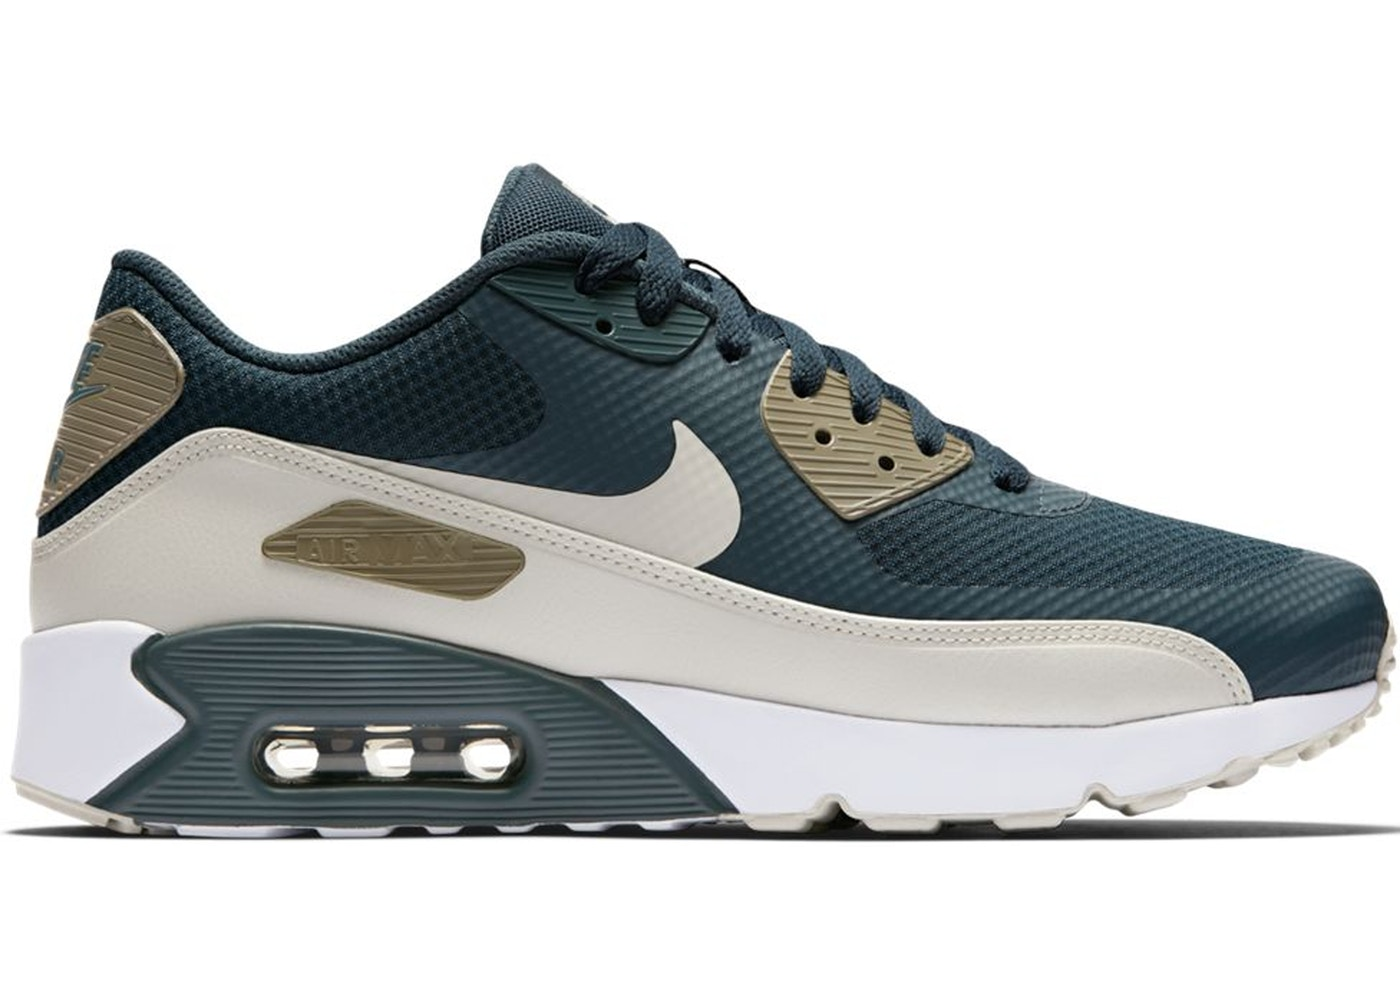 new style 8277f 75a6e Sell. or Ask. Size 9. View All Bids. Air Max 90 Ultra 2.0 Blue ...